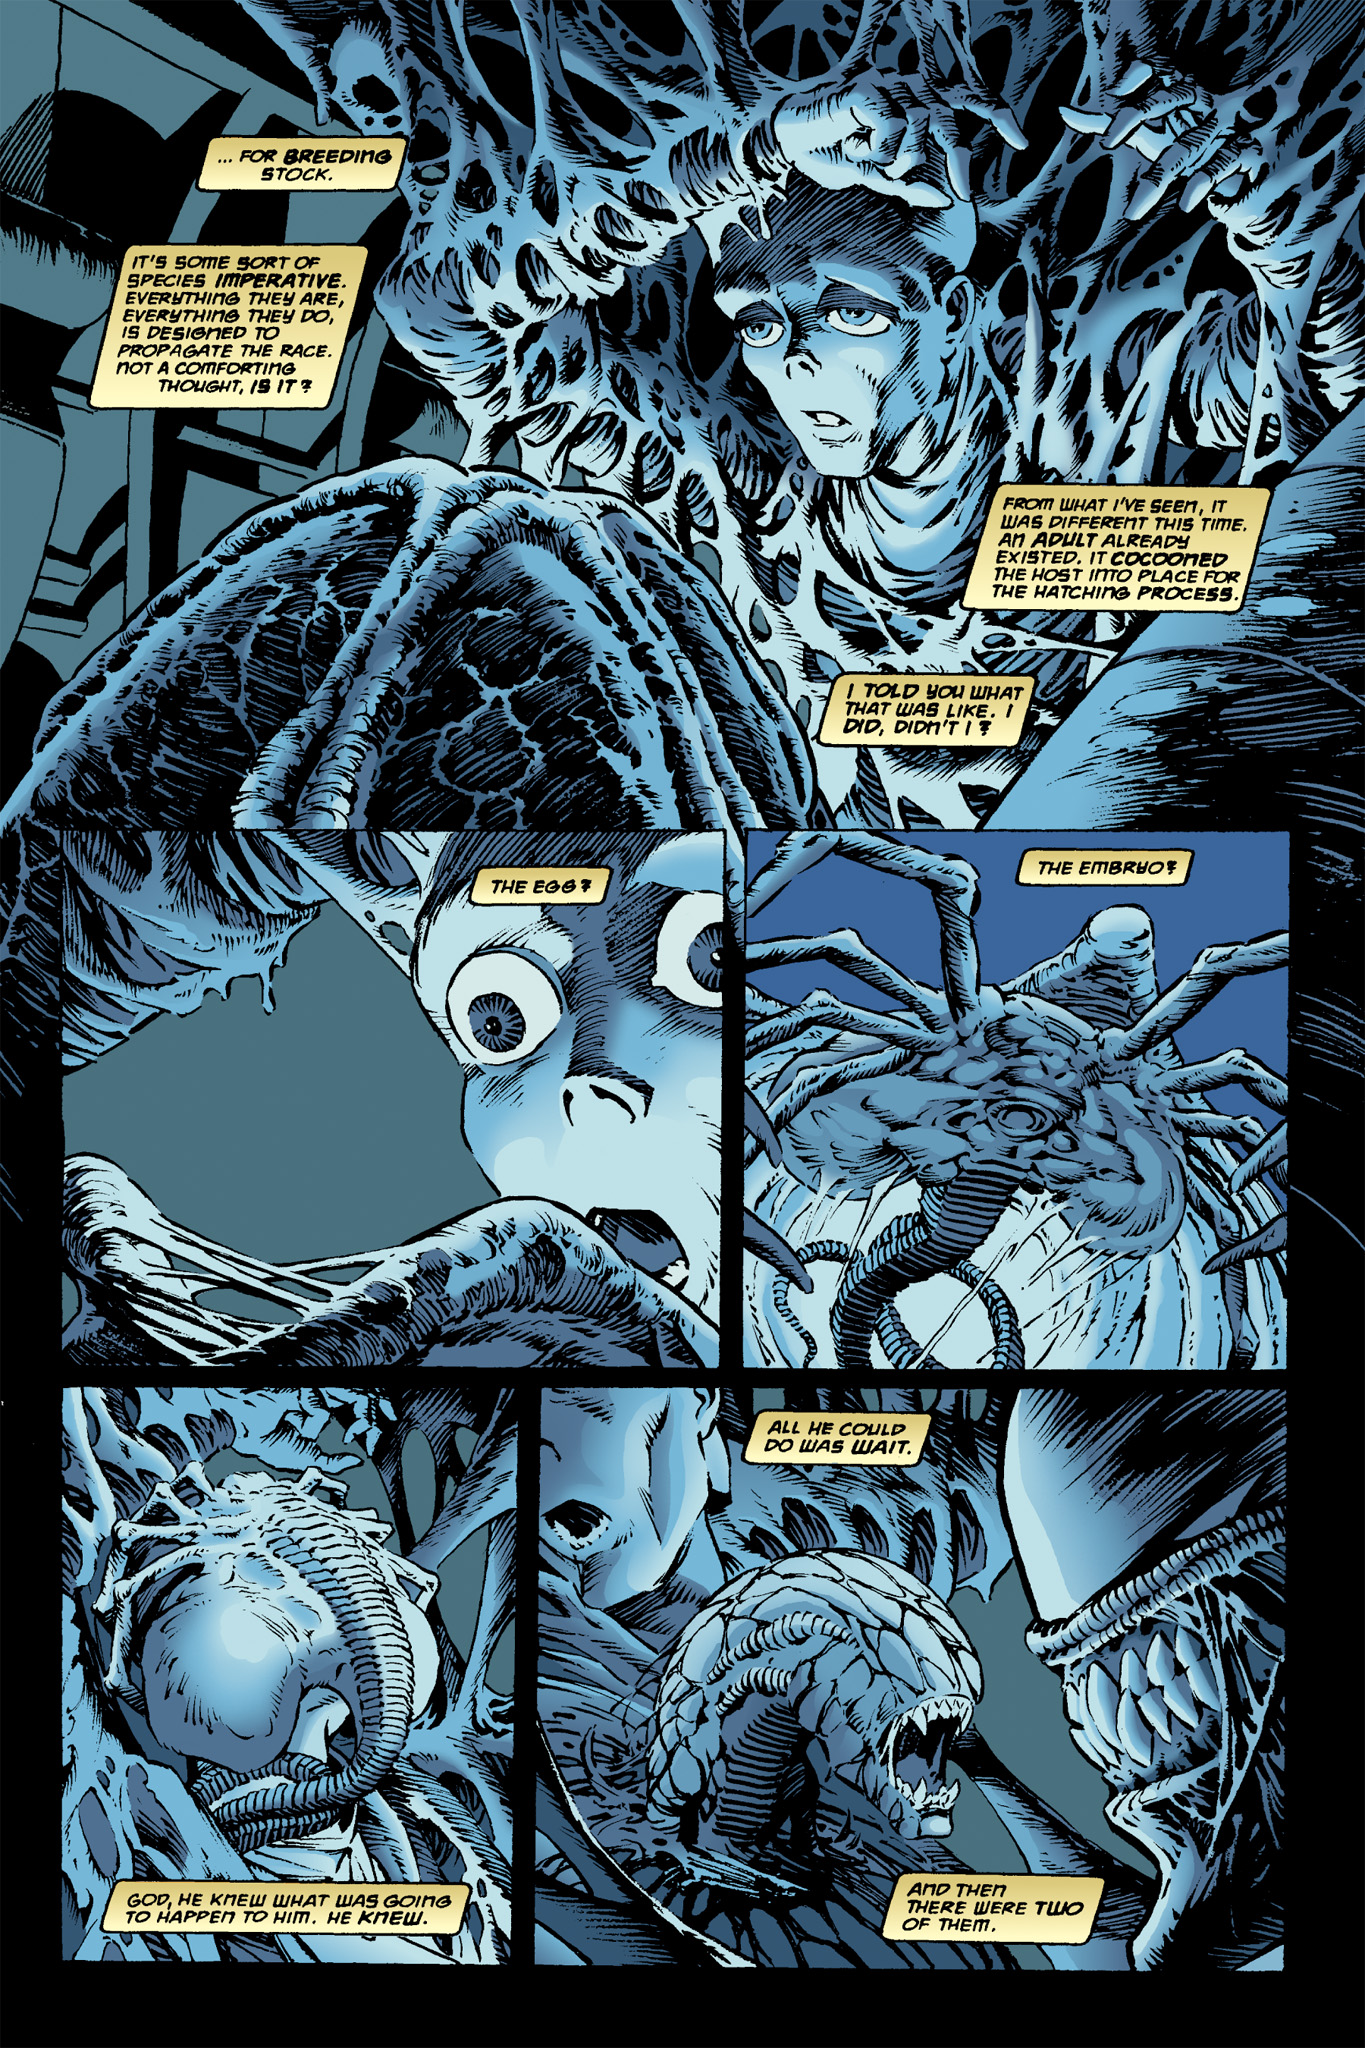 Read online Aliens: Incubation/Lucky/Taste comic -  Issue # Full - 11